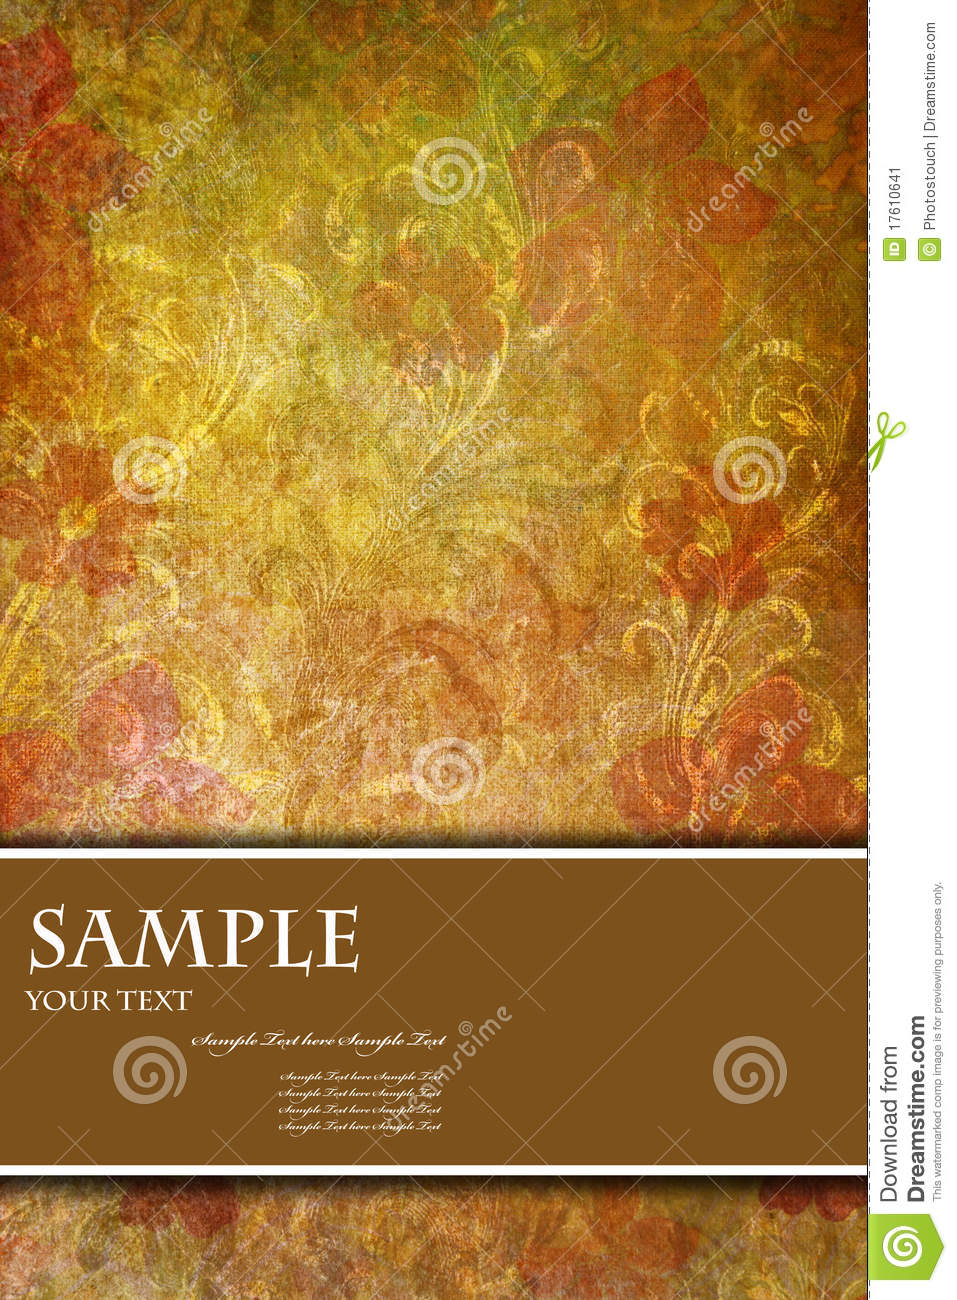 Photo Creative Backgrounds Book Cover : Abstract background for card or book cover stock